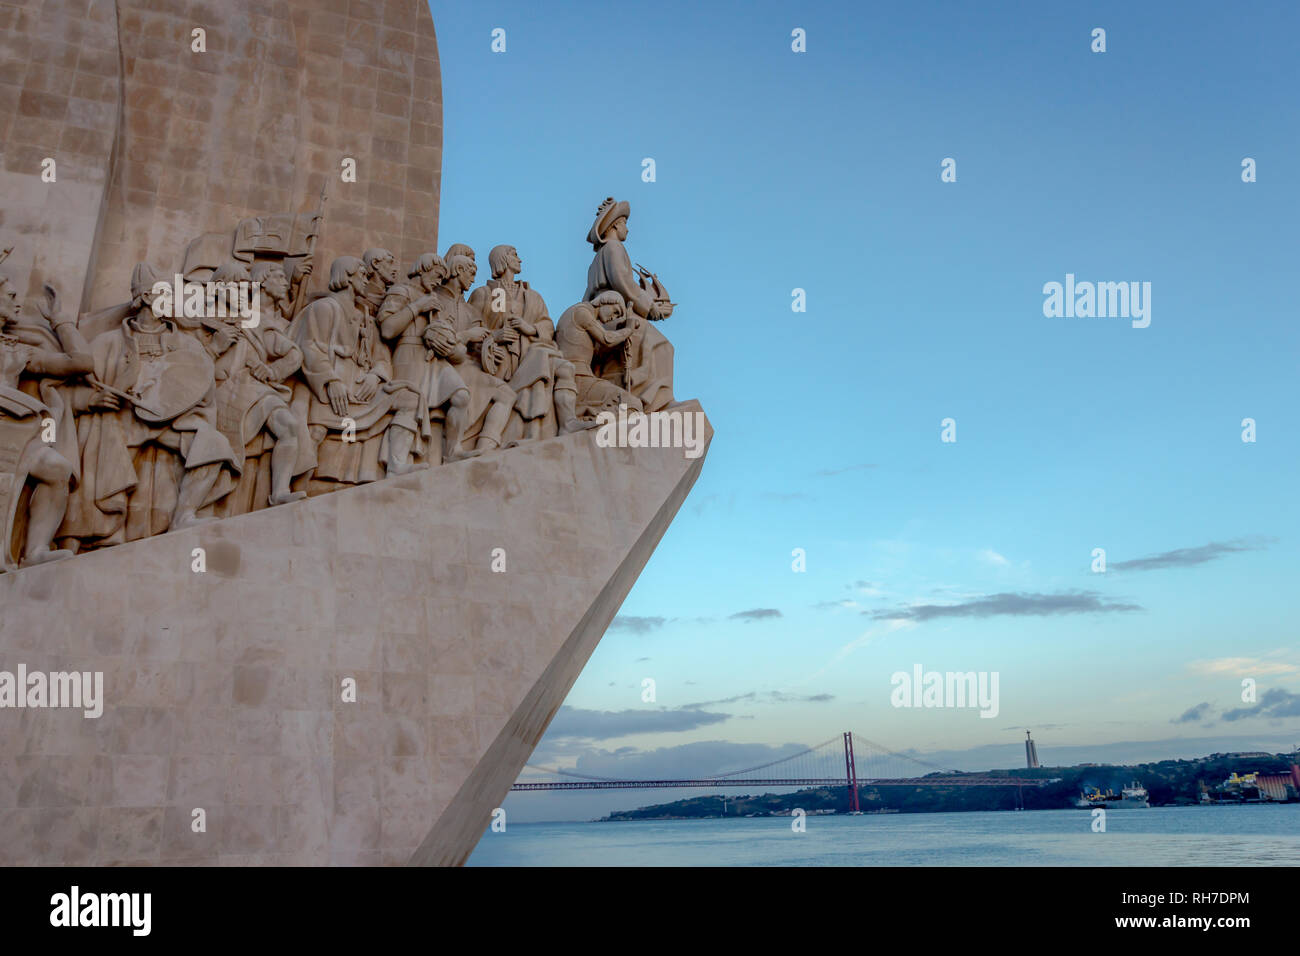 Discoveries monument, Lisbon, Portugal - Stock Image